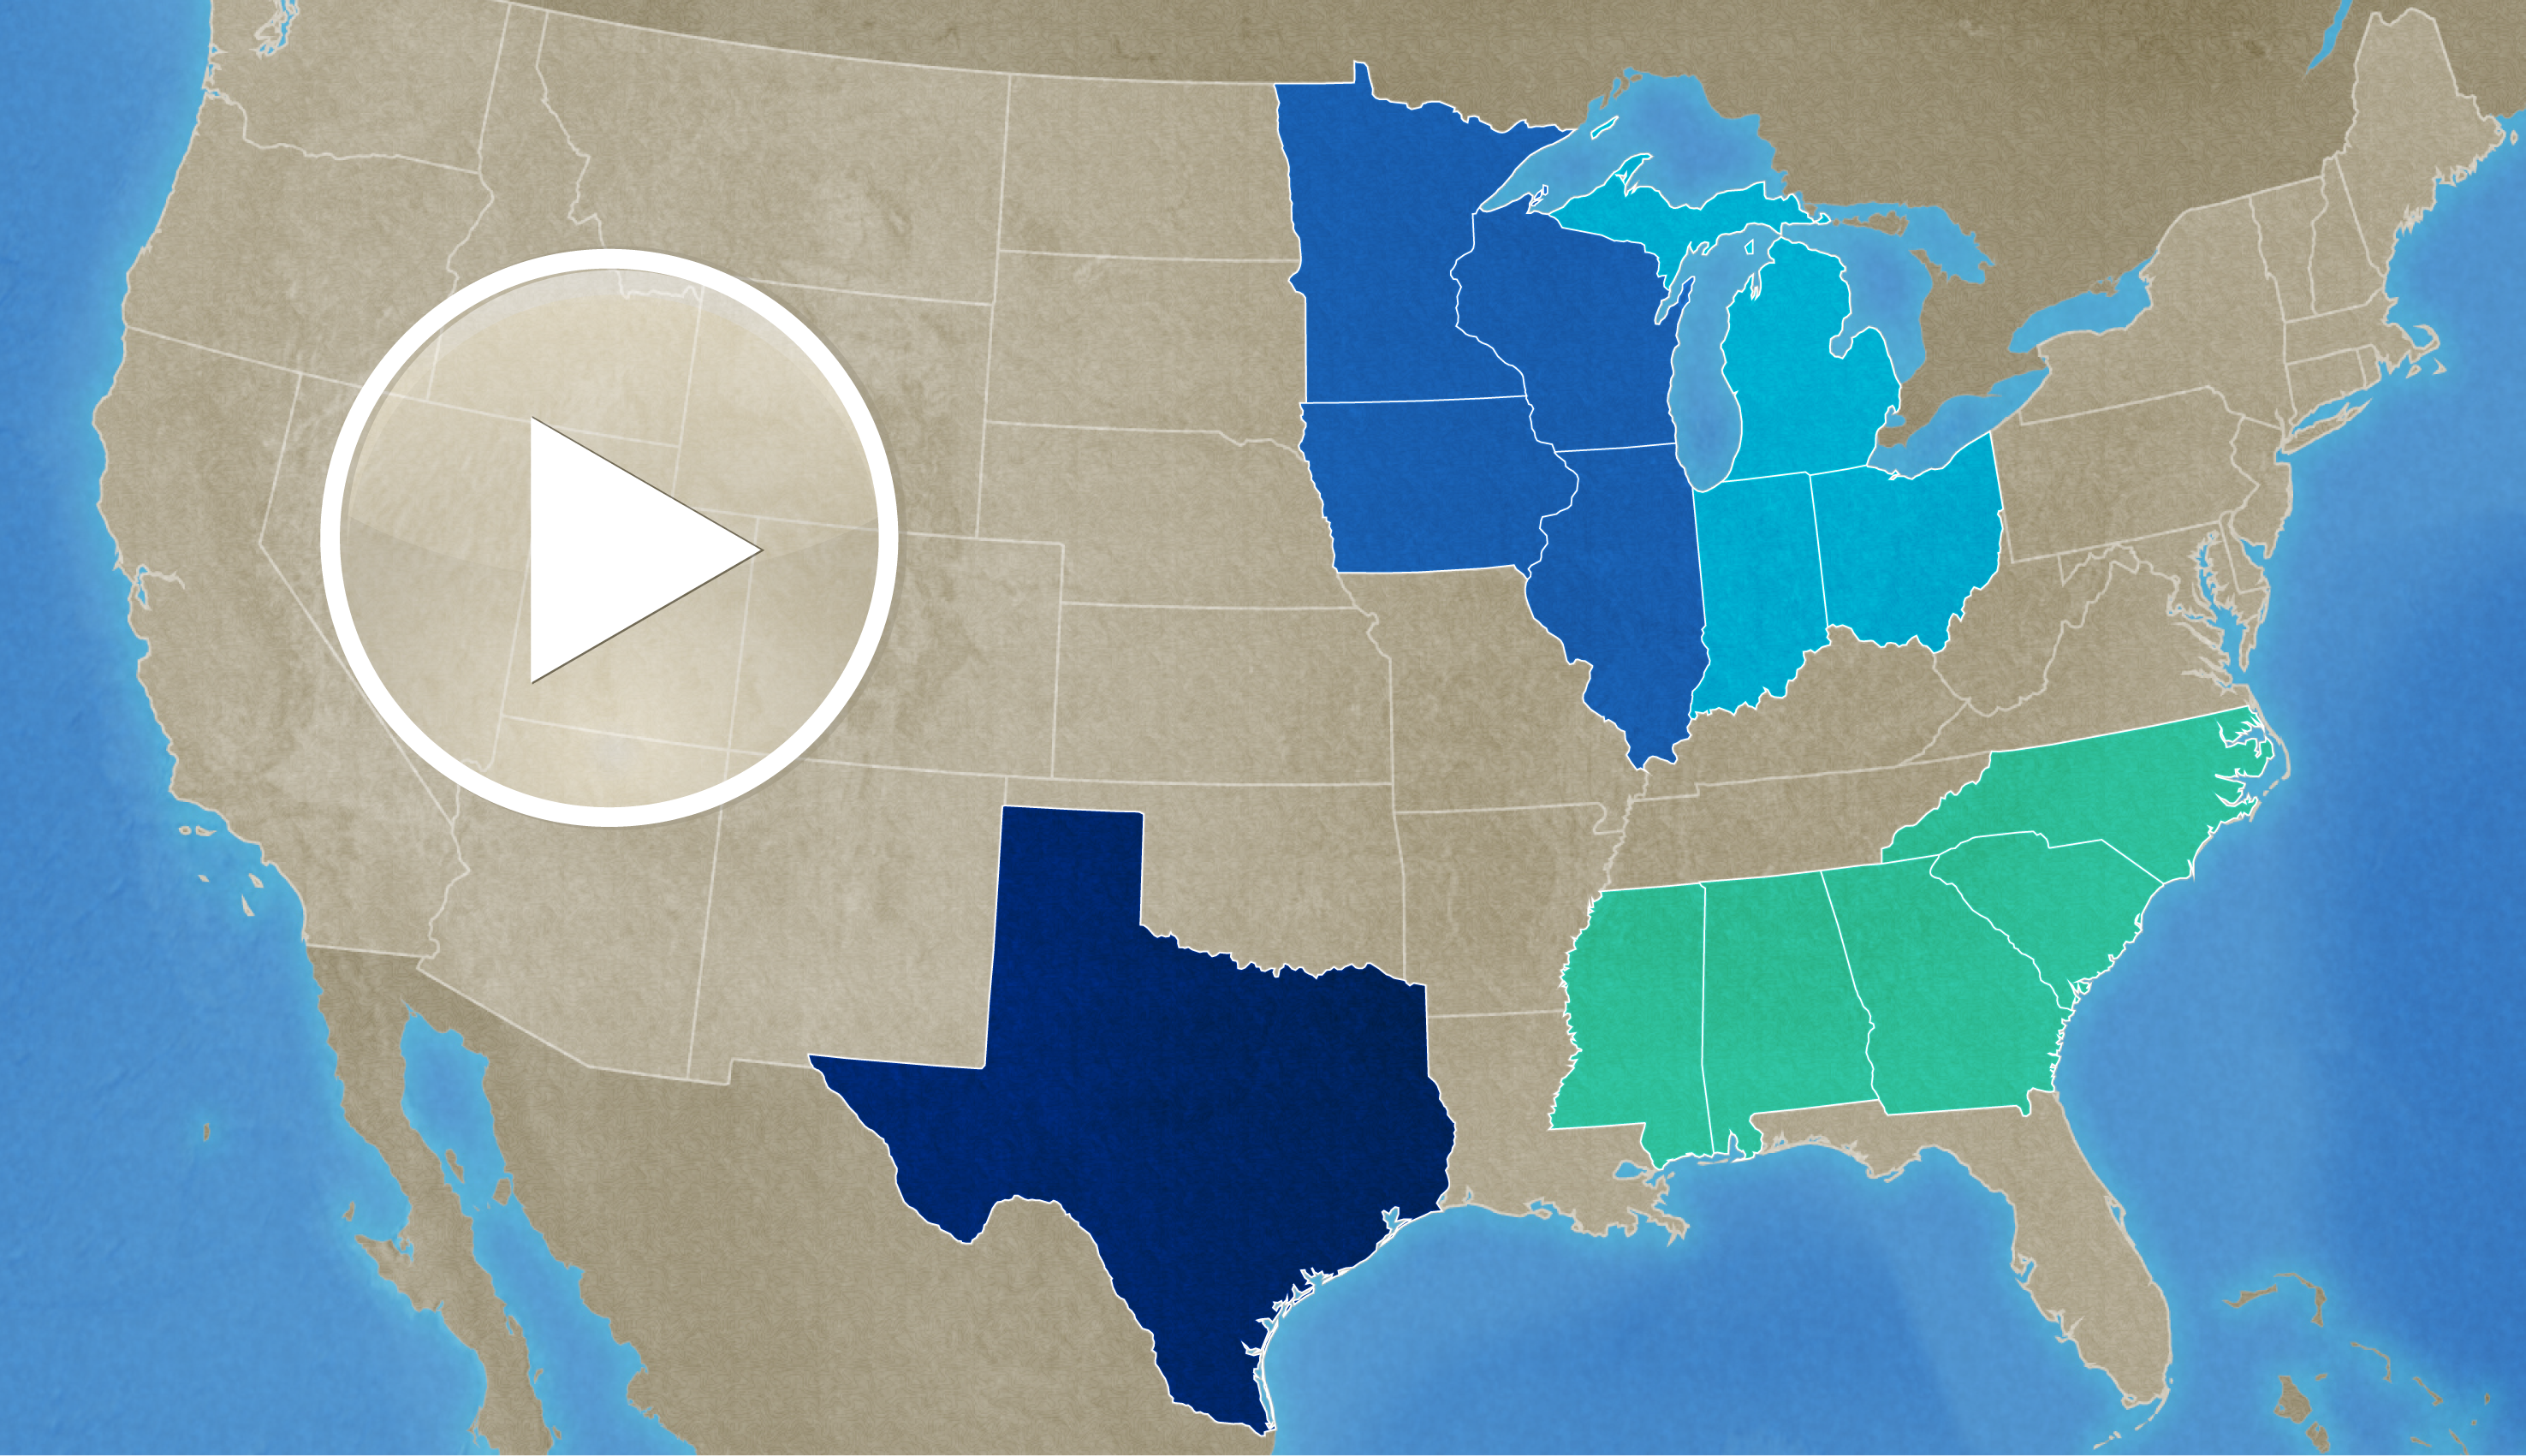 In this video, the four directors of the federally funded regional Comprehensive Centers discuss promising approaches to closing the achievement gap in Michigan, Minnesota, Mississippi, and Texas.